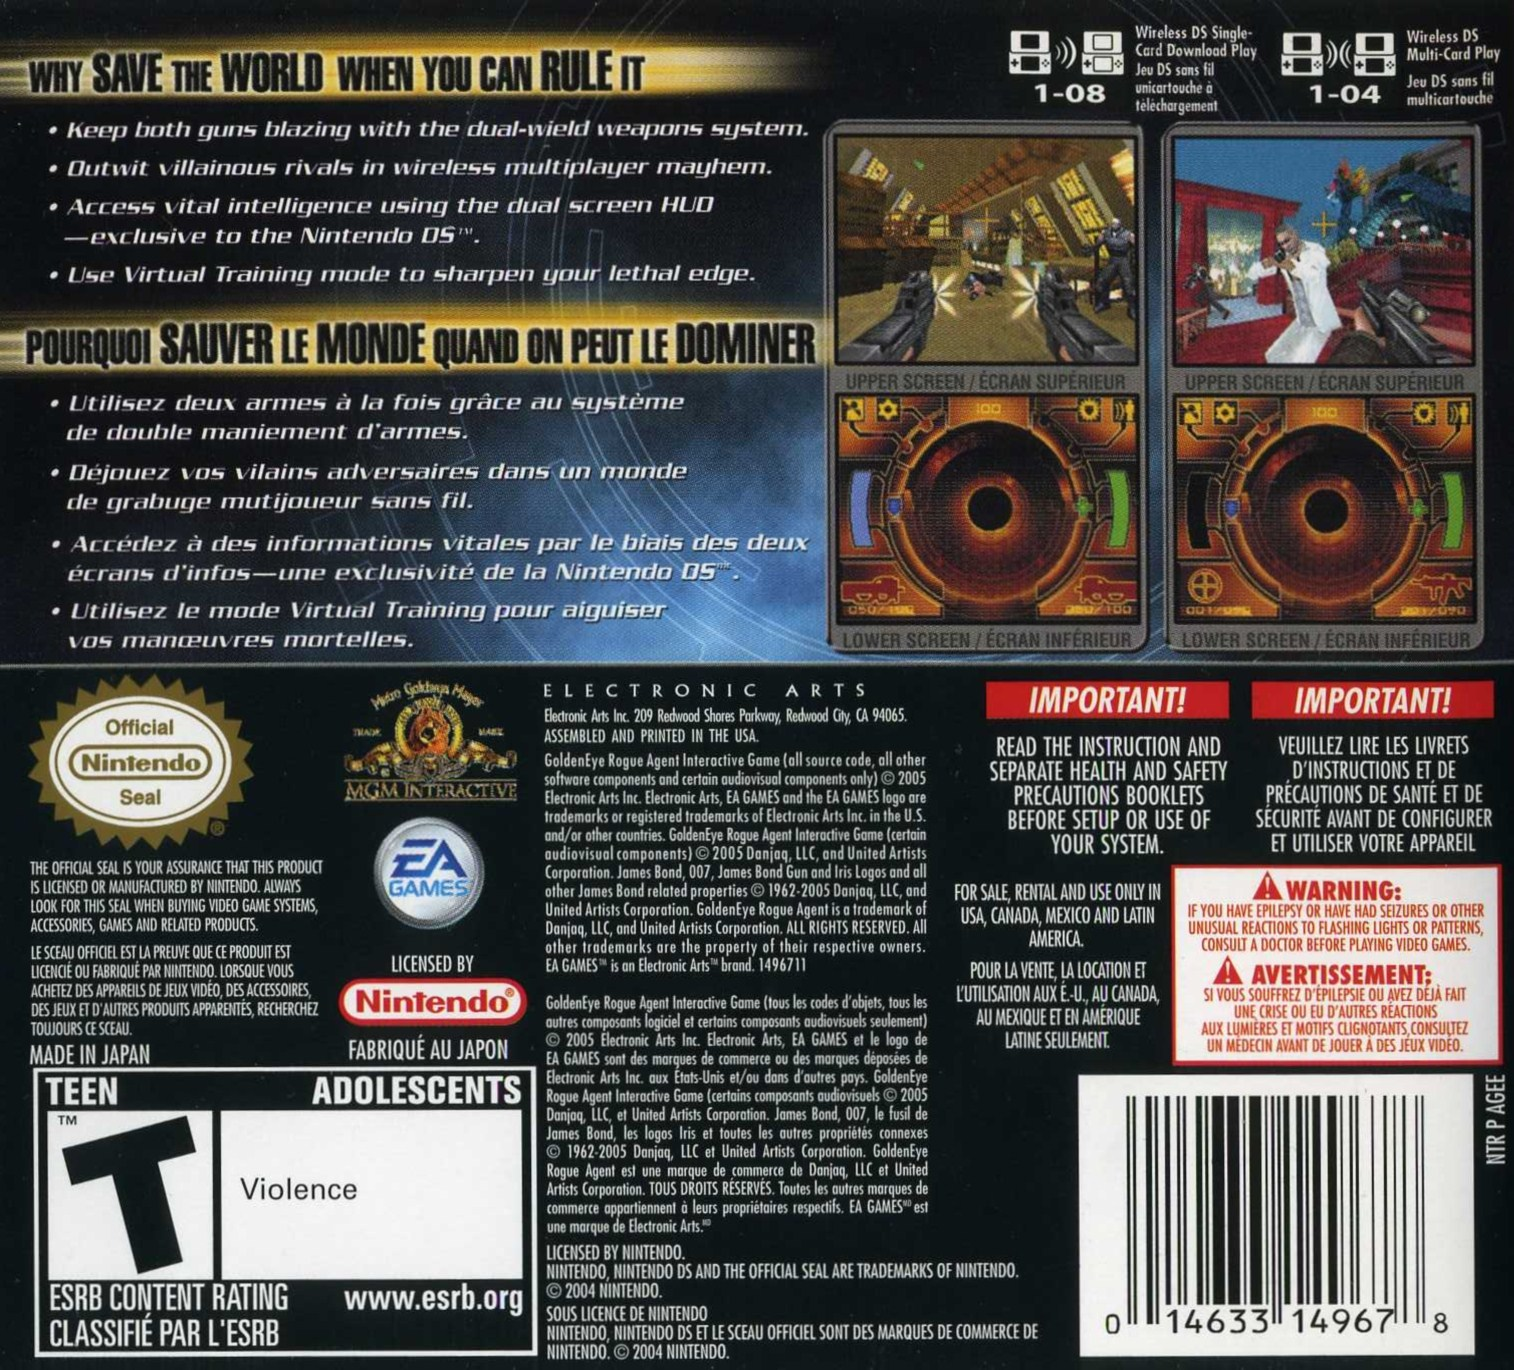 GoldenEye: Rogue Agent Video Game - DS (USA) back image (back cover, second image)